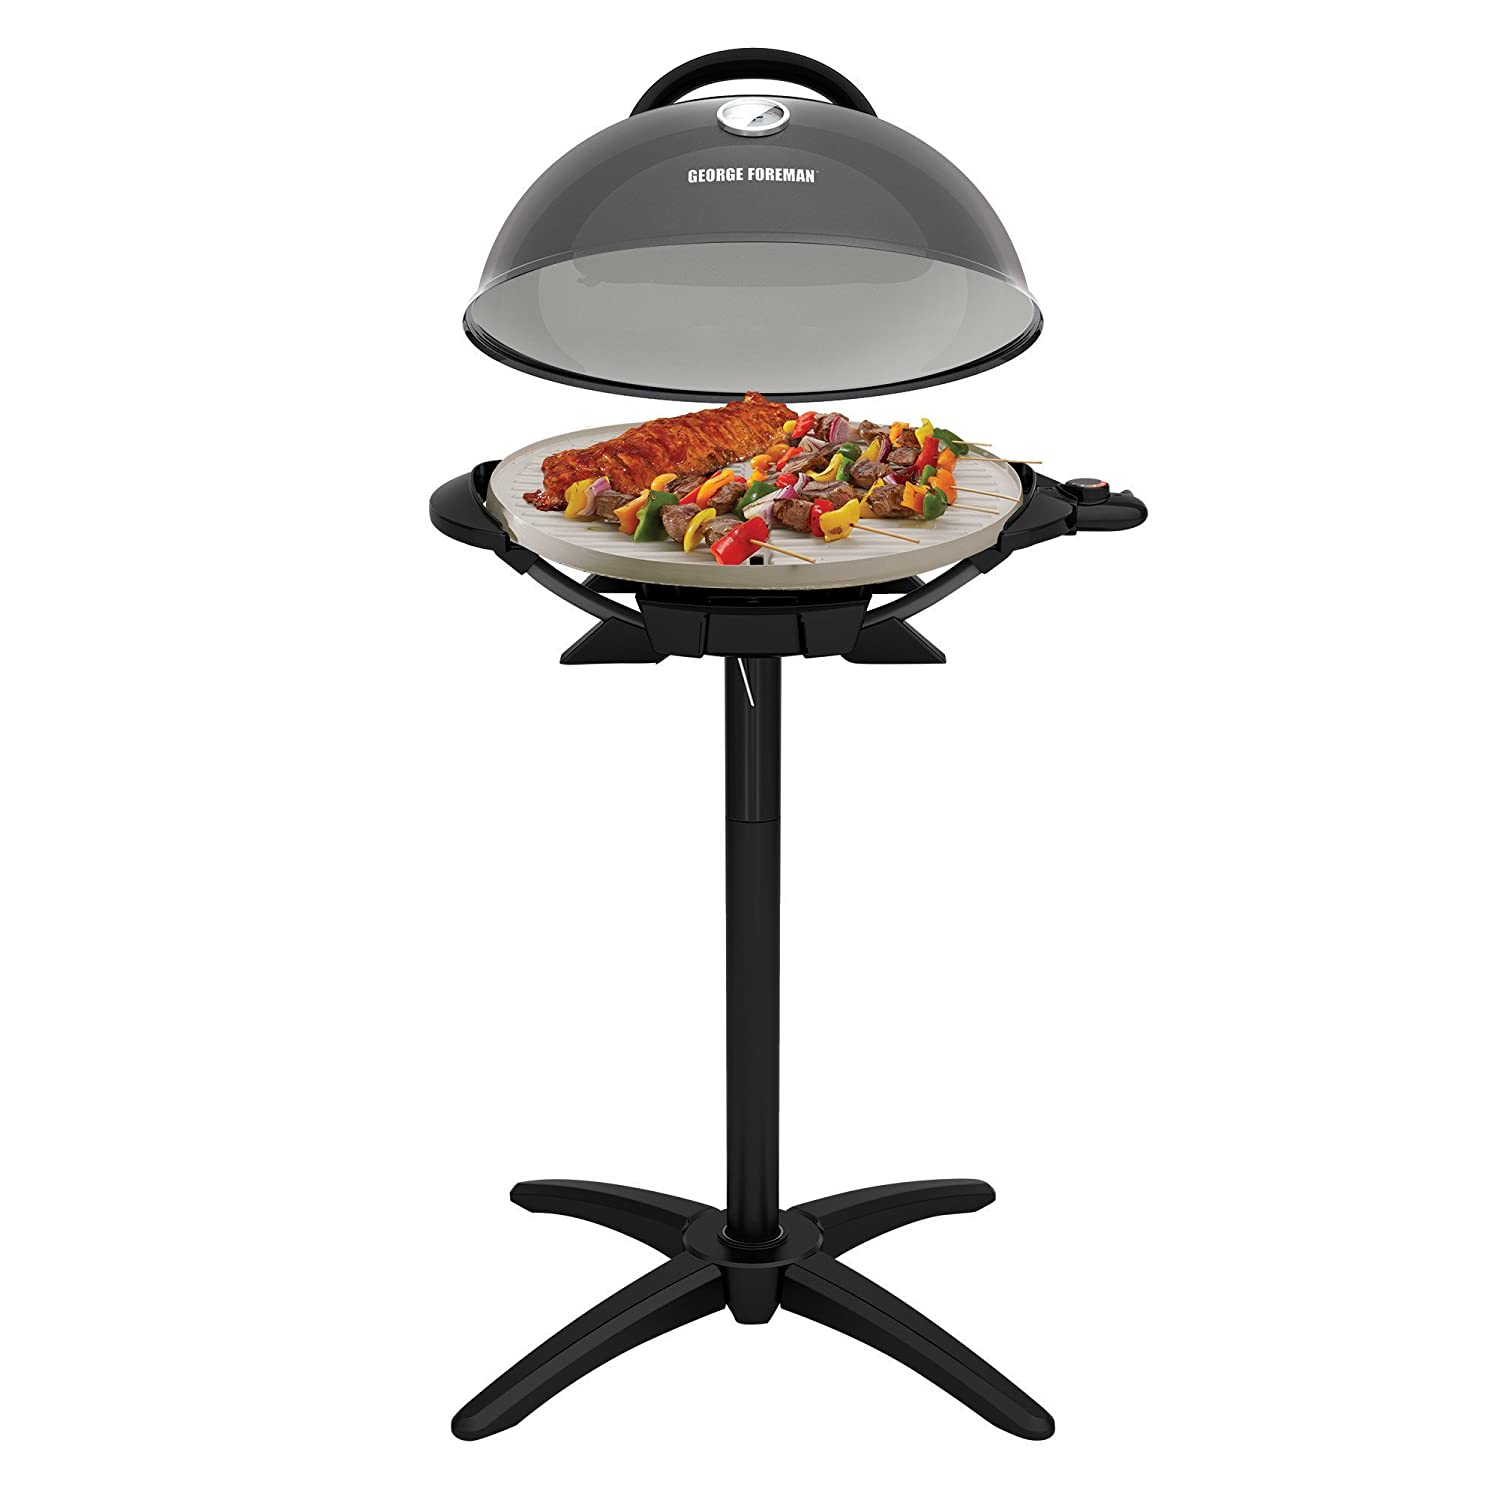 Amazon.com: George Foreman GFO3320GM Indoor/Outdoor Gun ...